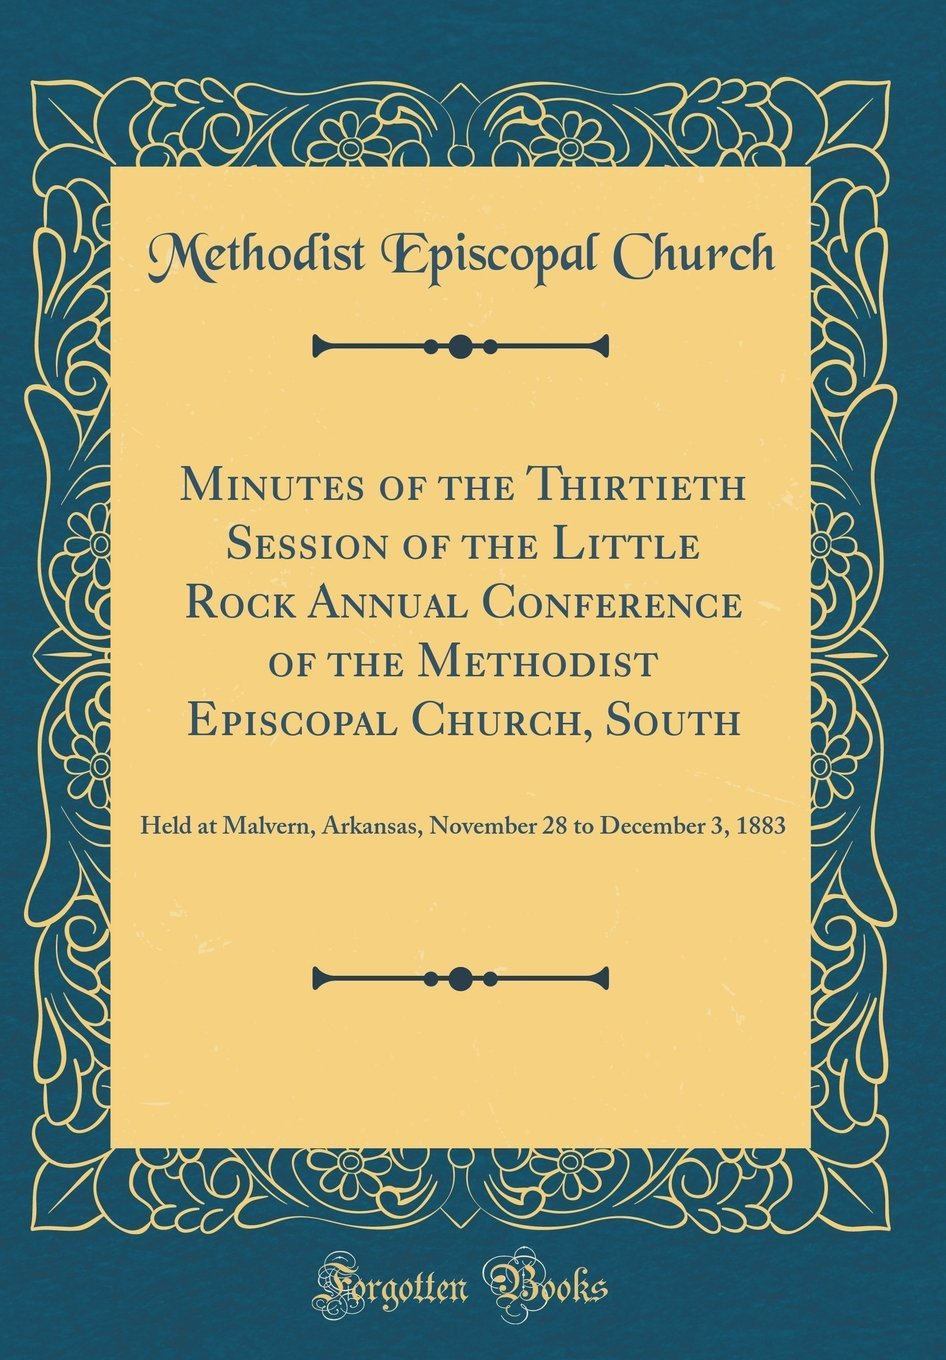 Download Minutes of the Thirtieth Session of the Little Rock Annual Conference of the Methodist Episcopal Church, South: Held at Malvern, Arkansas, November 28 to December 3, 1883 (Classic Reprint) pdf